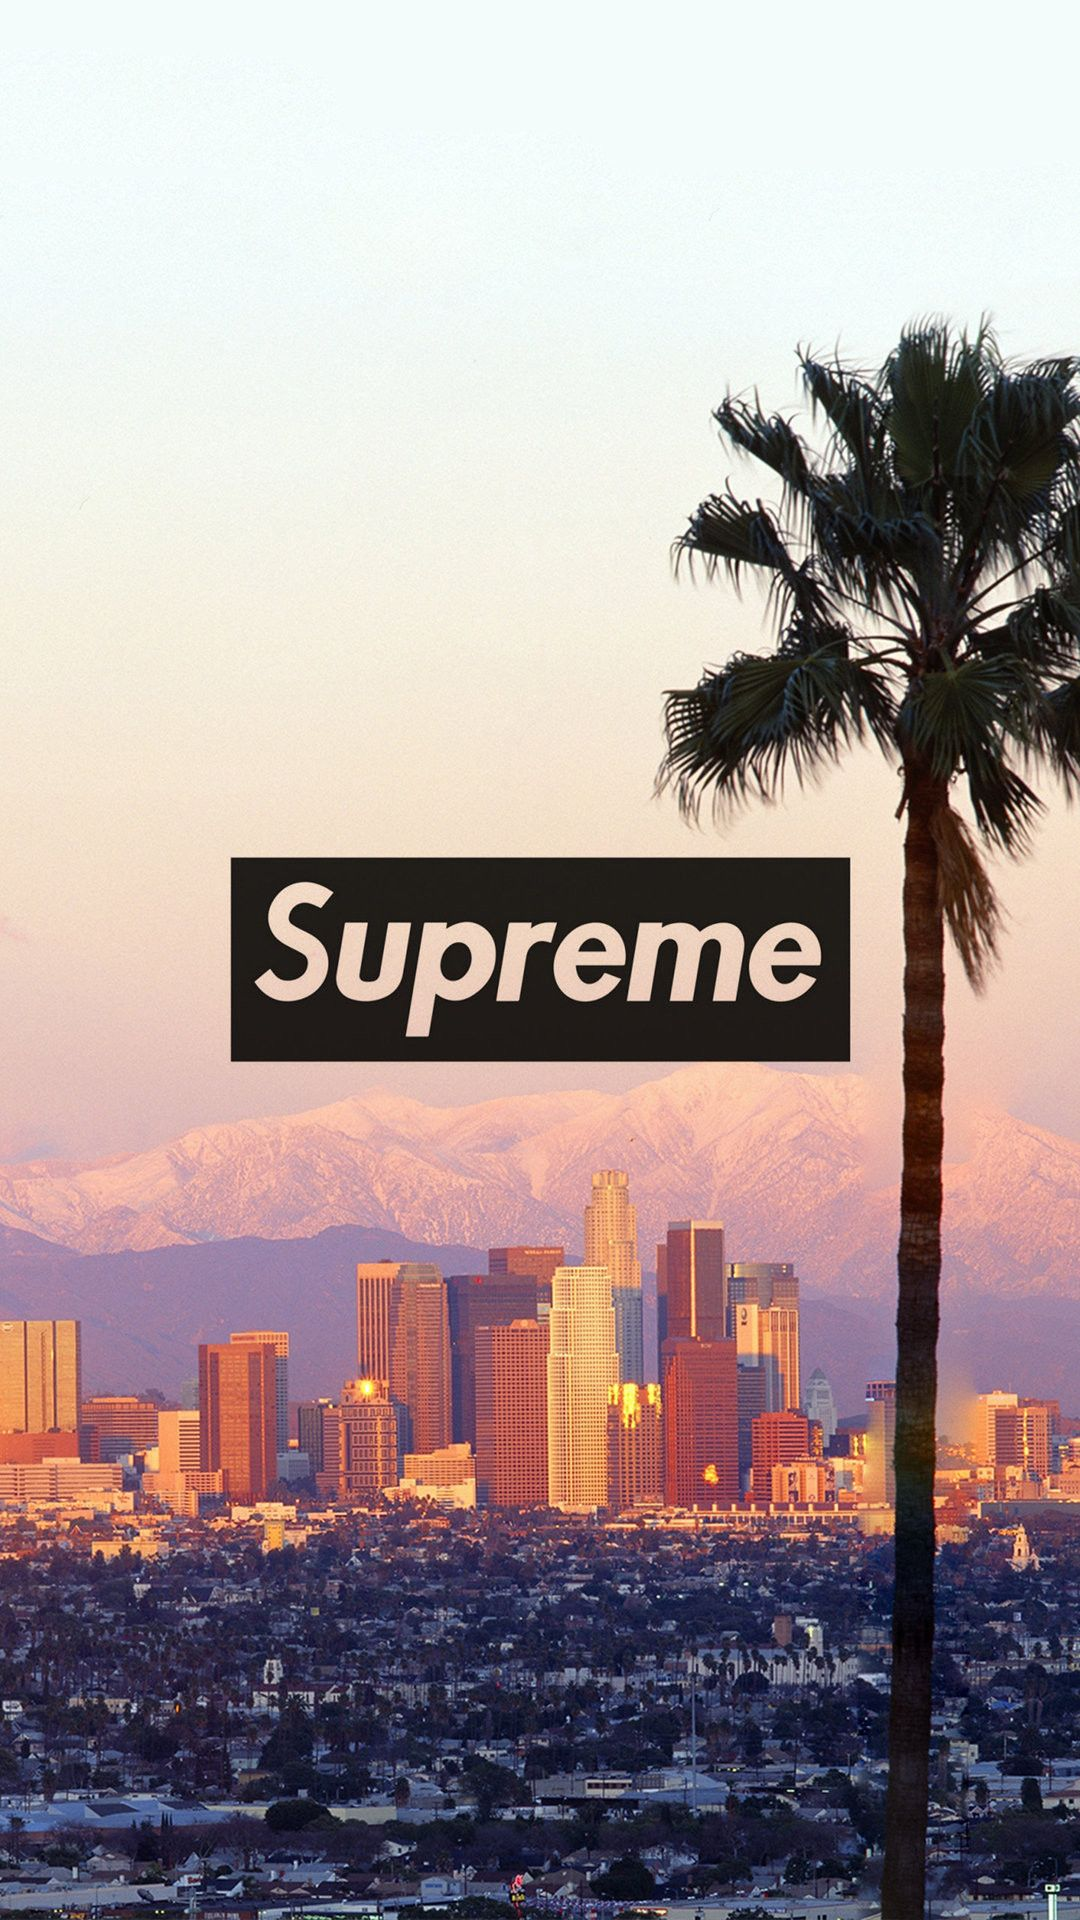 Supreme iPhone Wallpapers   Top Supreme iPhone Backgrounds 1080x1920